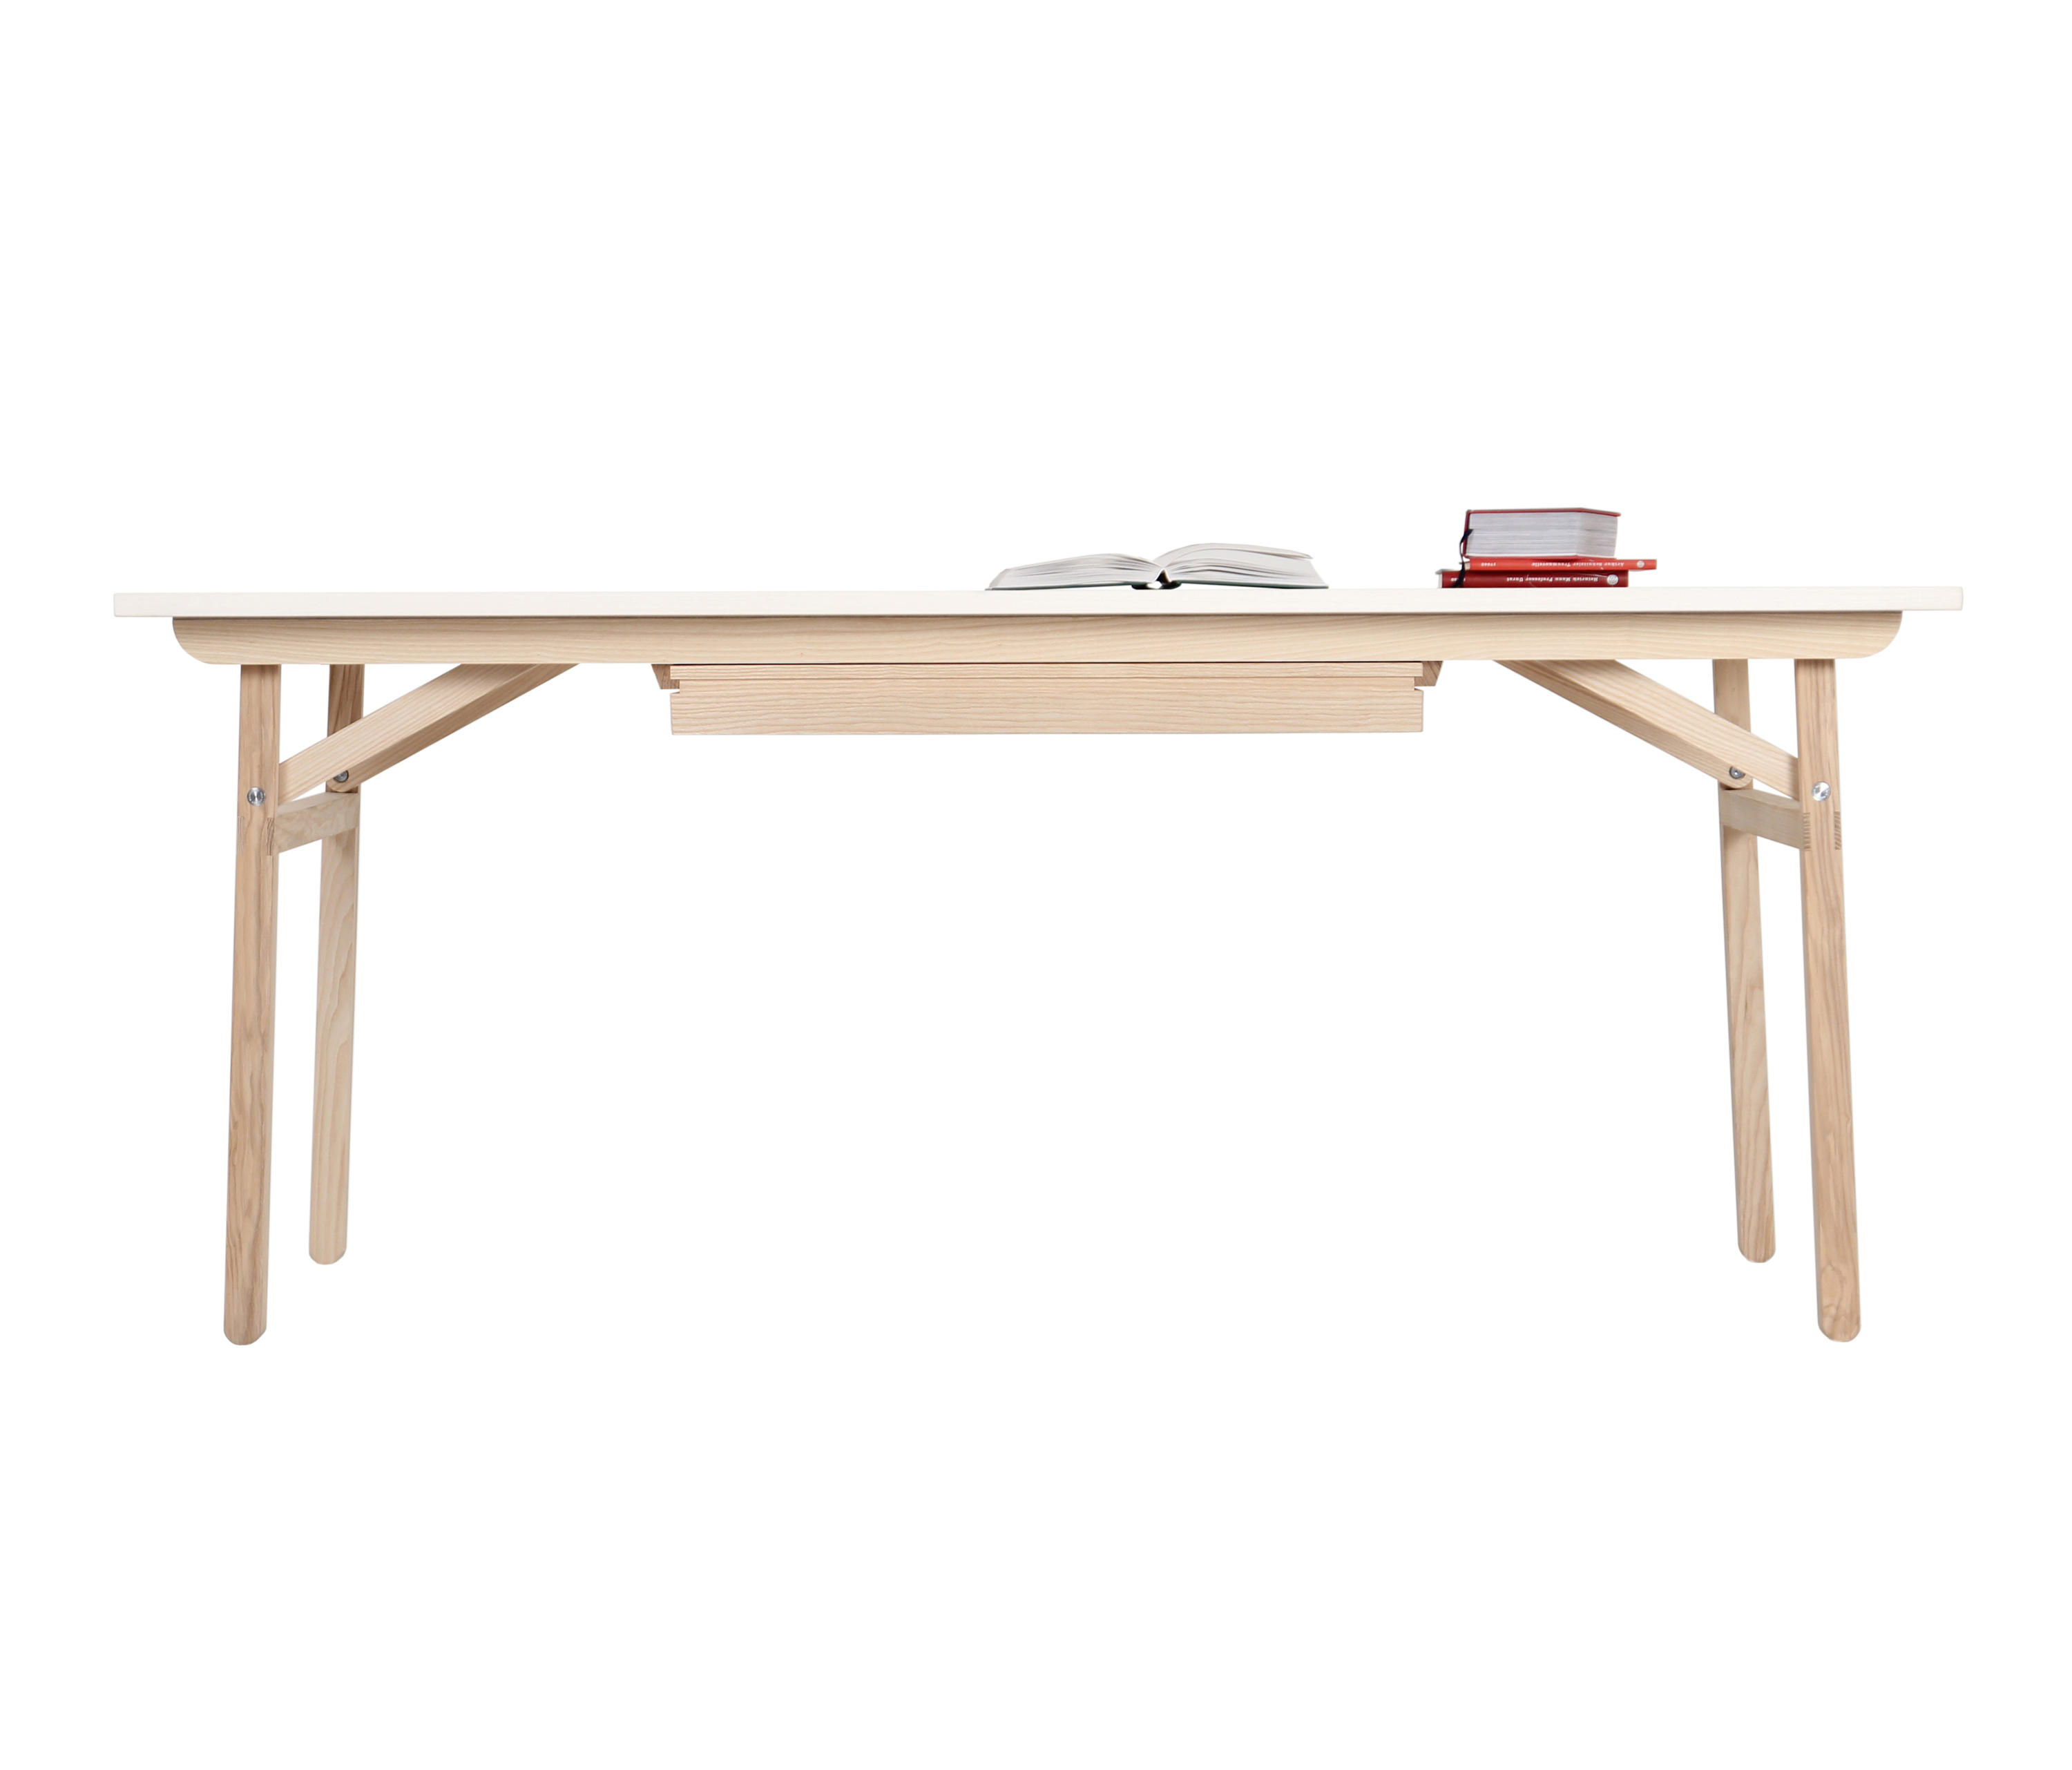 Klopstock Individual Desks From Moormann Architonic